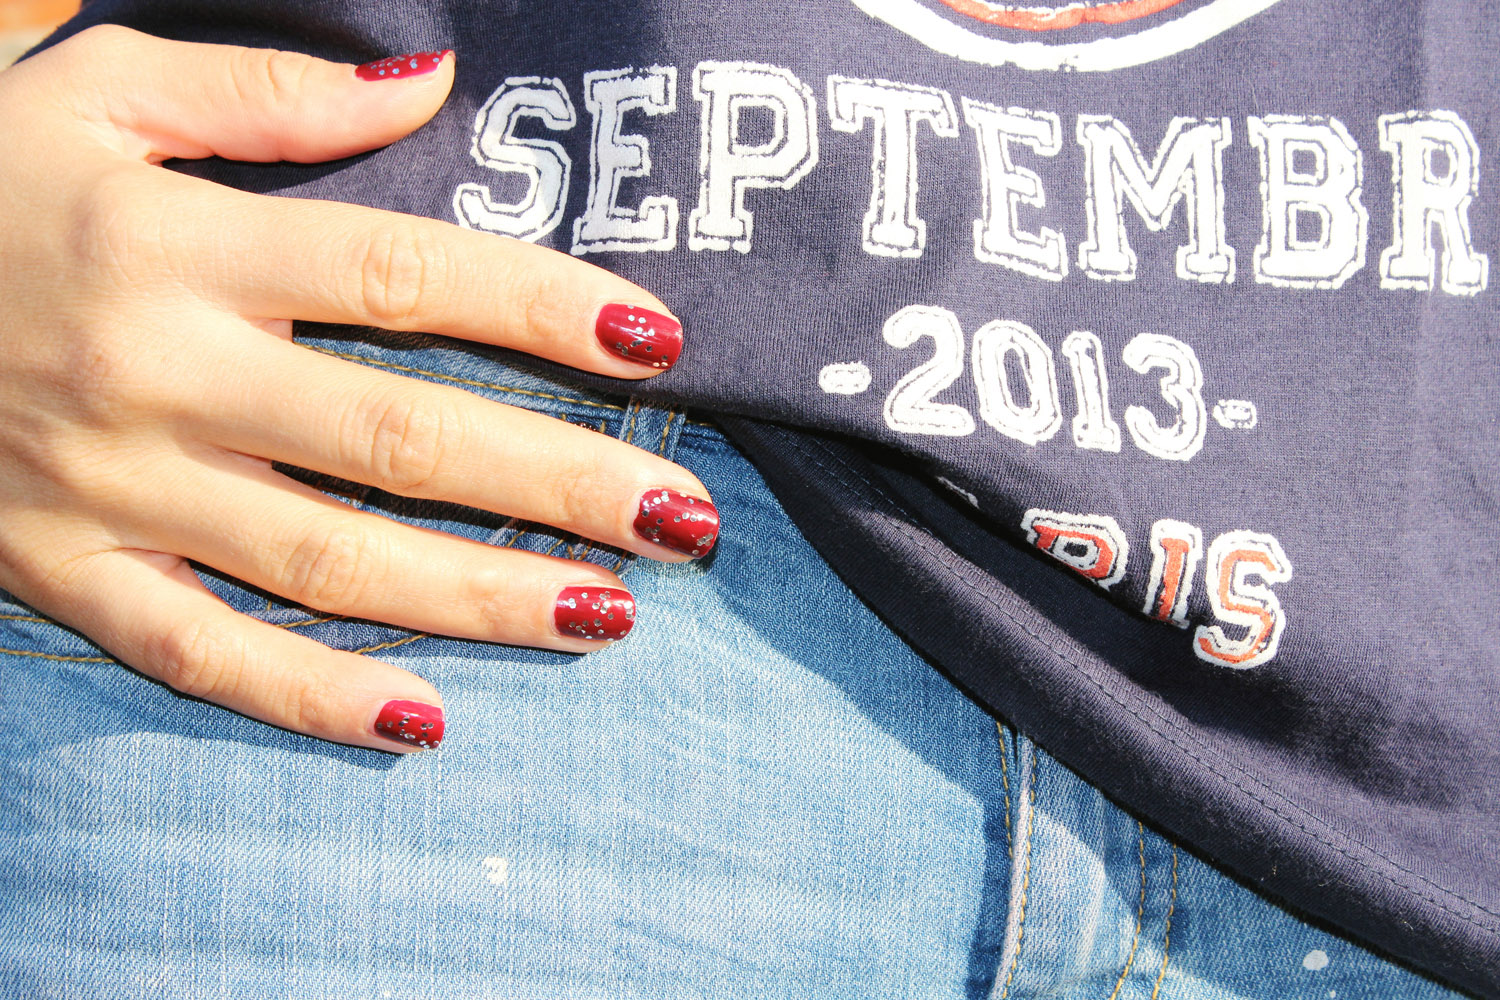 fatimayarie-nailpolish-essienails-sallyhansen-opi-nails-rednails-vogue-fashionista-img_2995